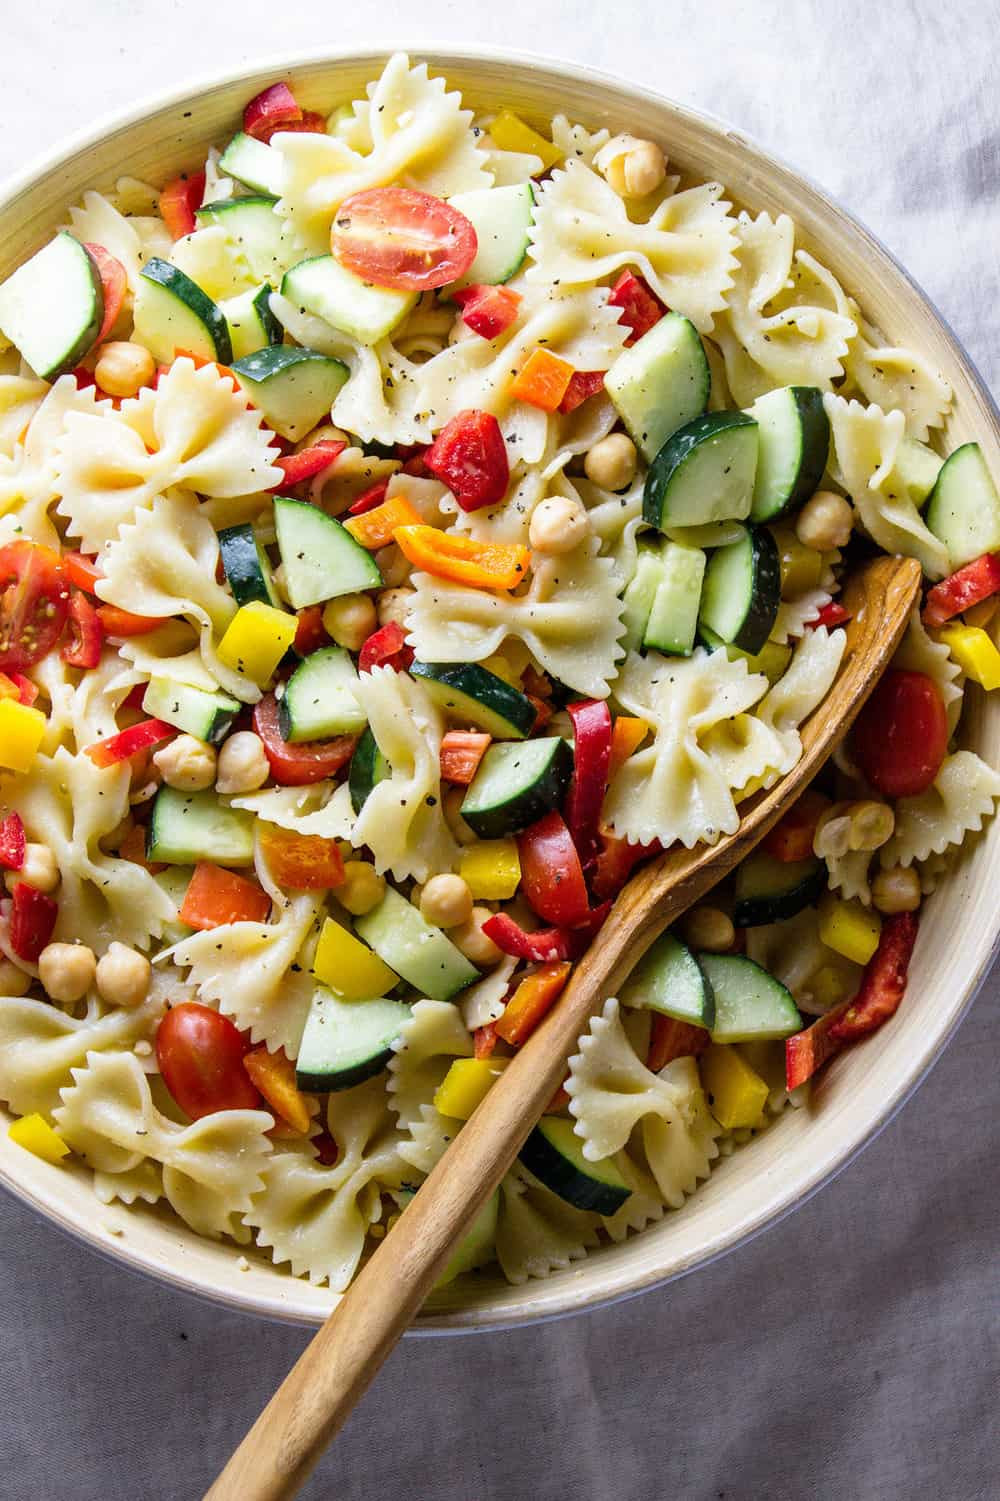 Healthy Pasta Salad Vegetarian  QUICK N HEALTHY CHICKPEA VEGETABLE PASTA SALAD THE